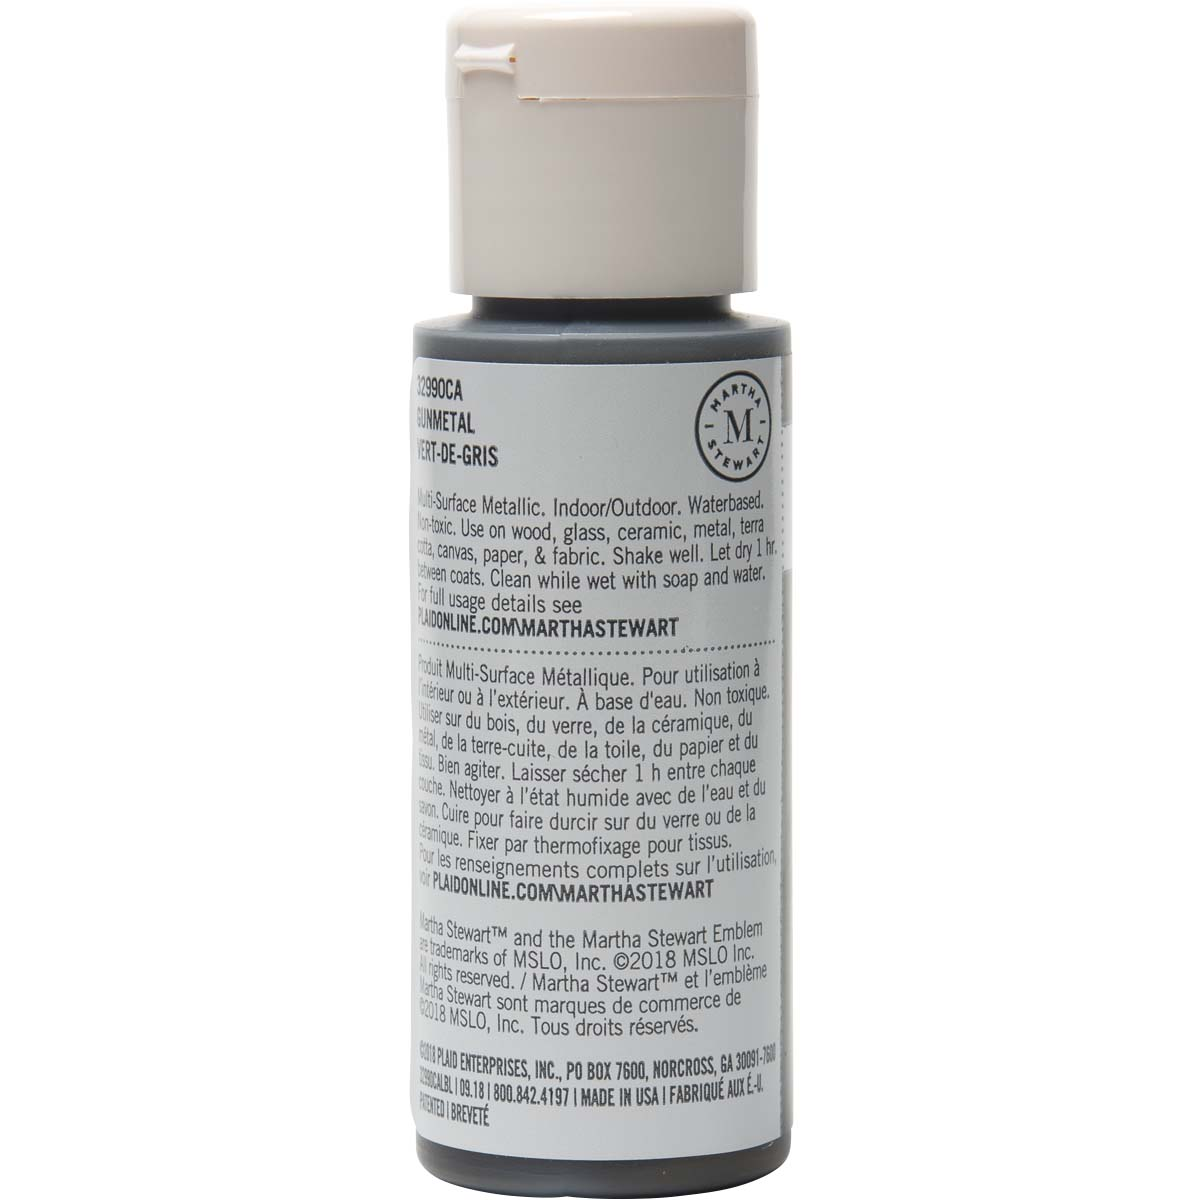 Martha Stewart ® Multi-Surface Metallic Acrylic Craft Paint - Gunmetal, 2 oz. - 32990CA